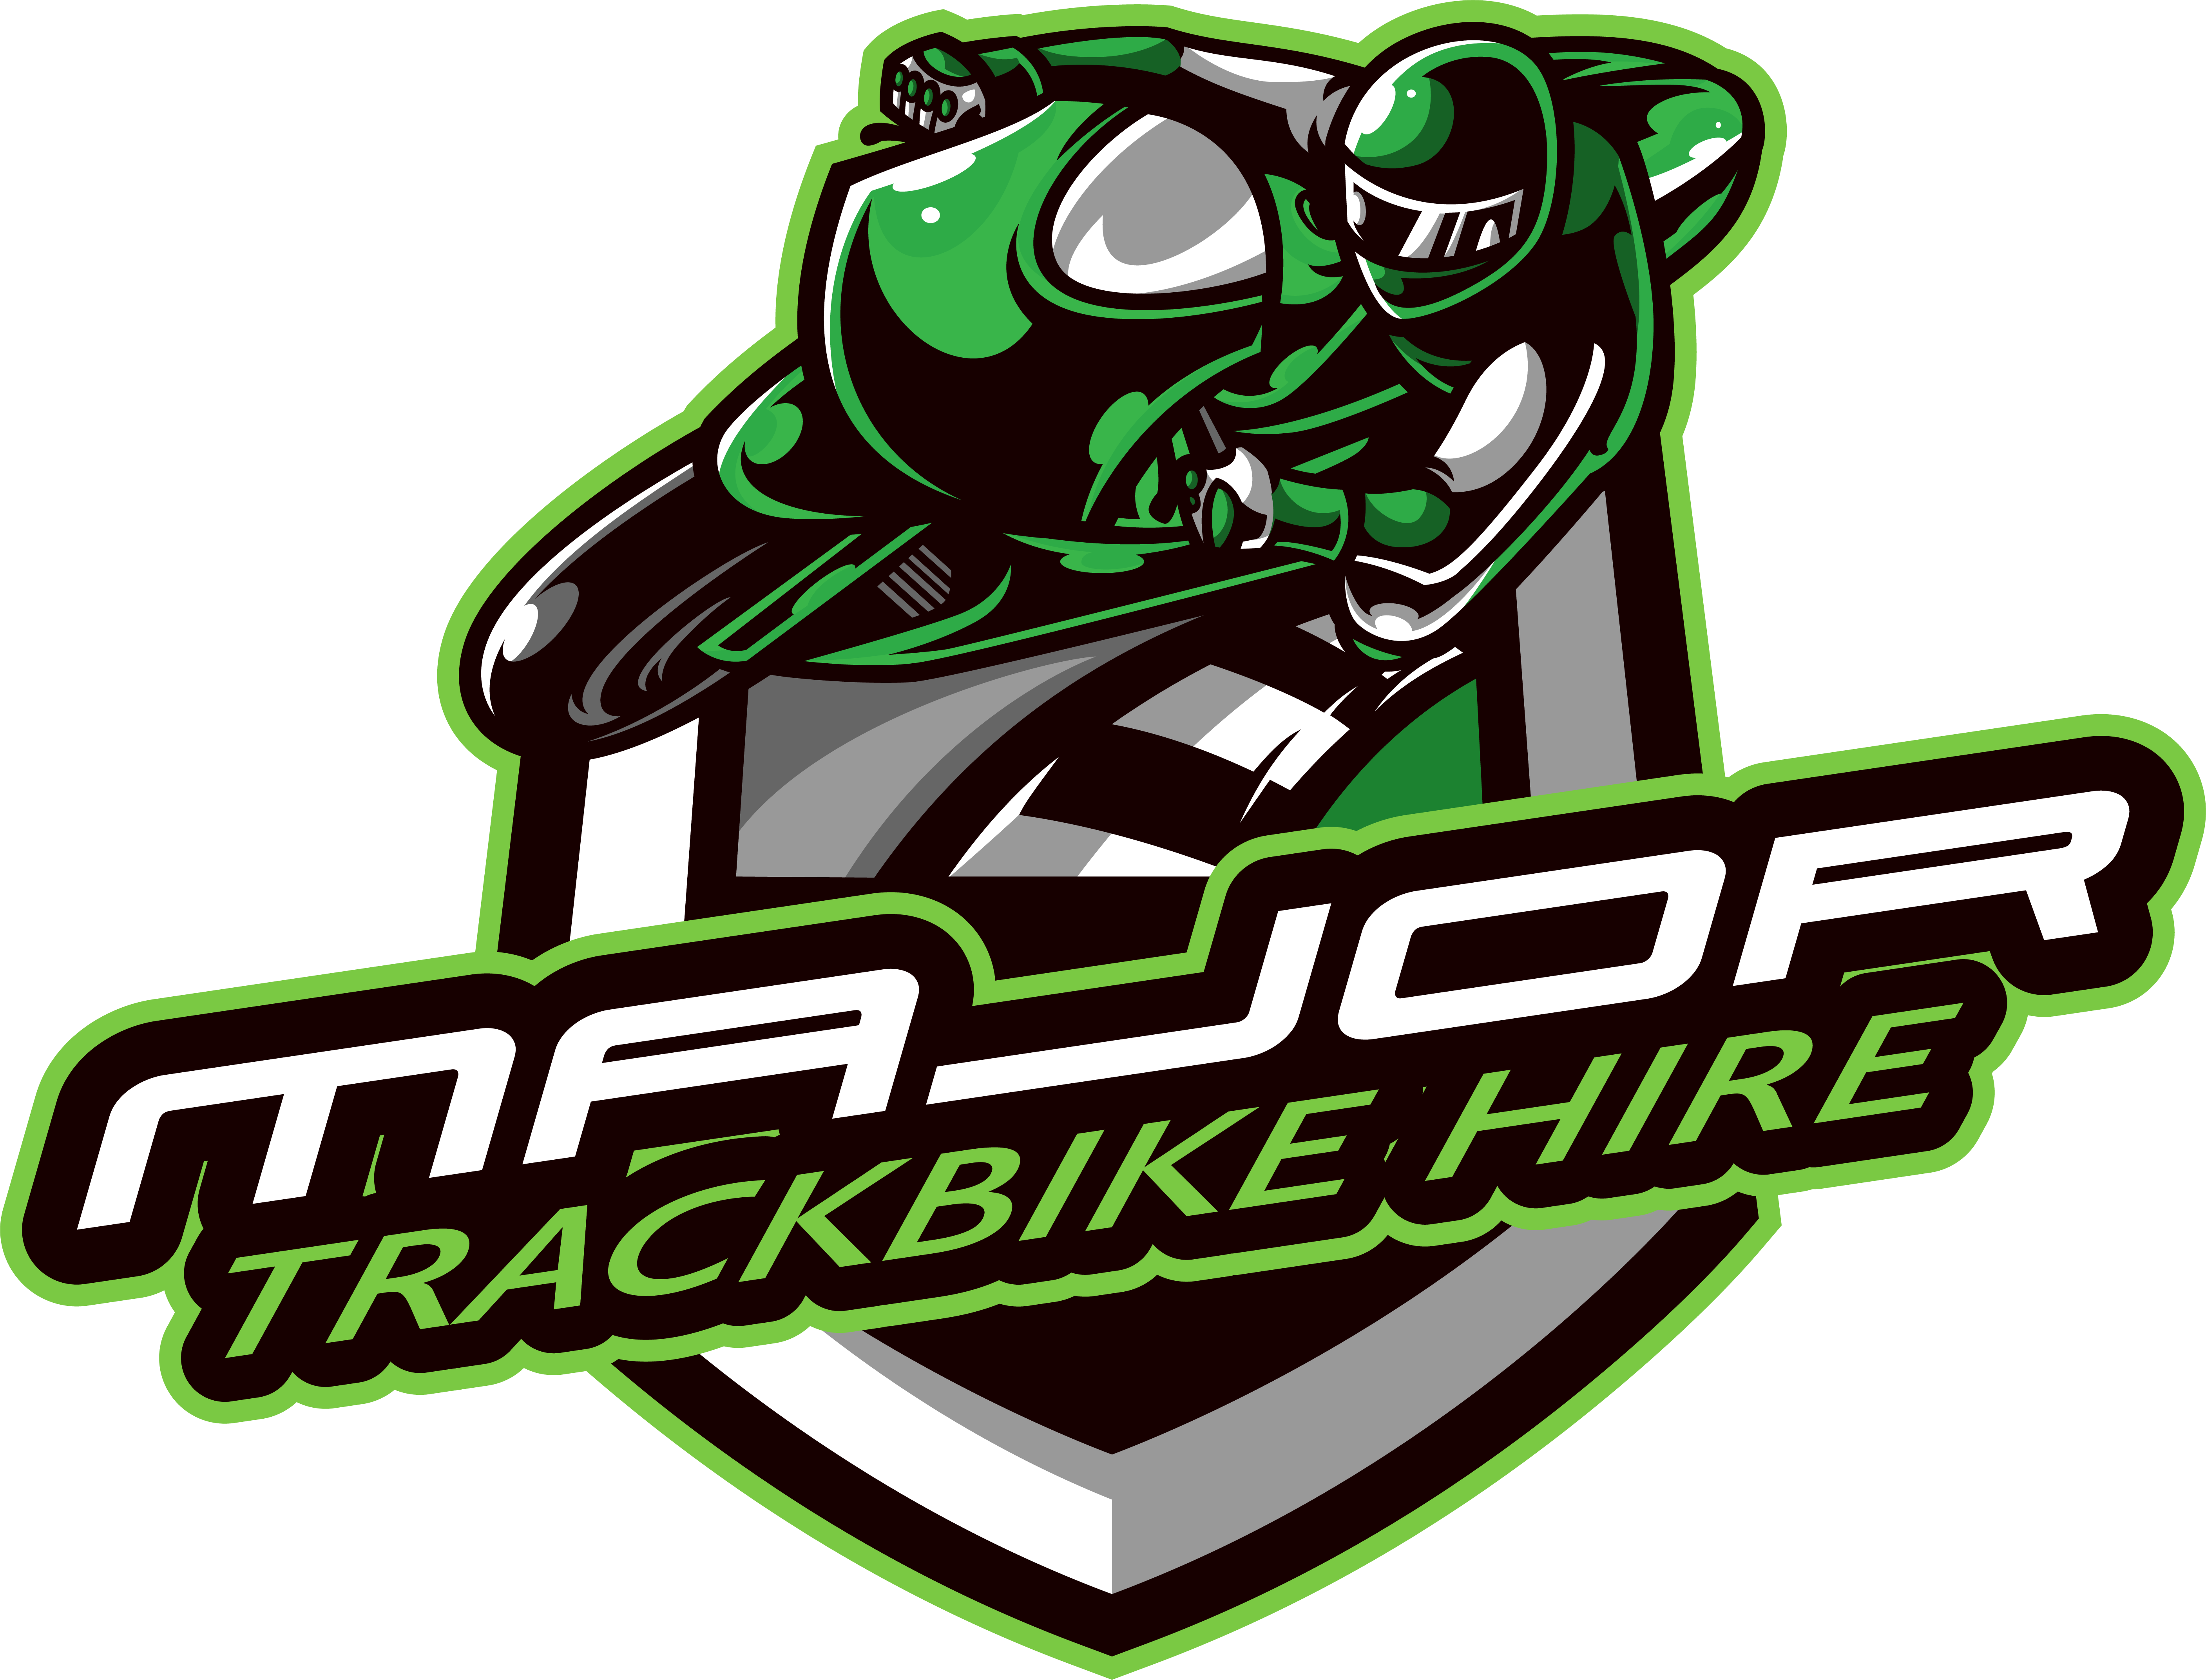 Major Trackbike Hire